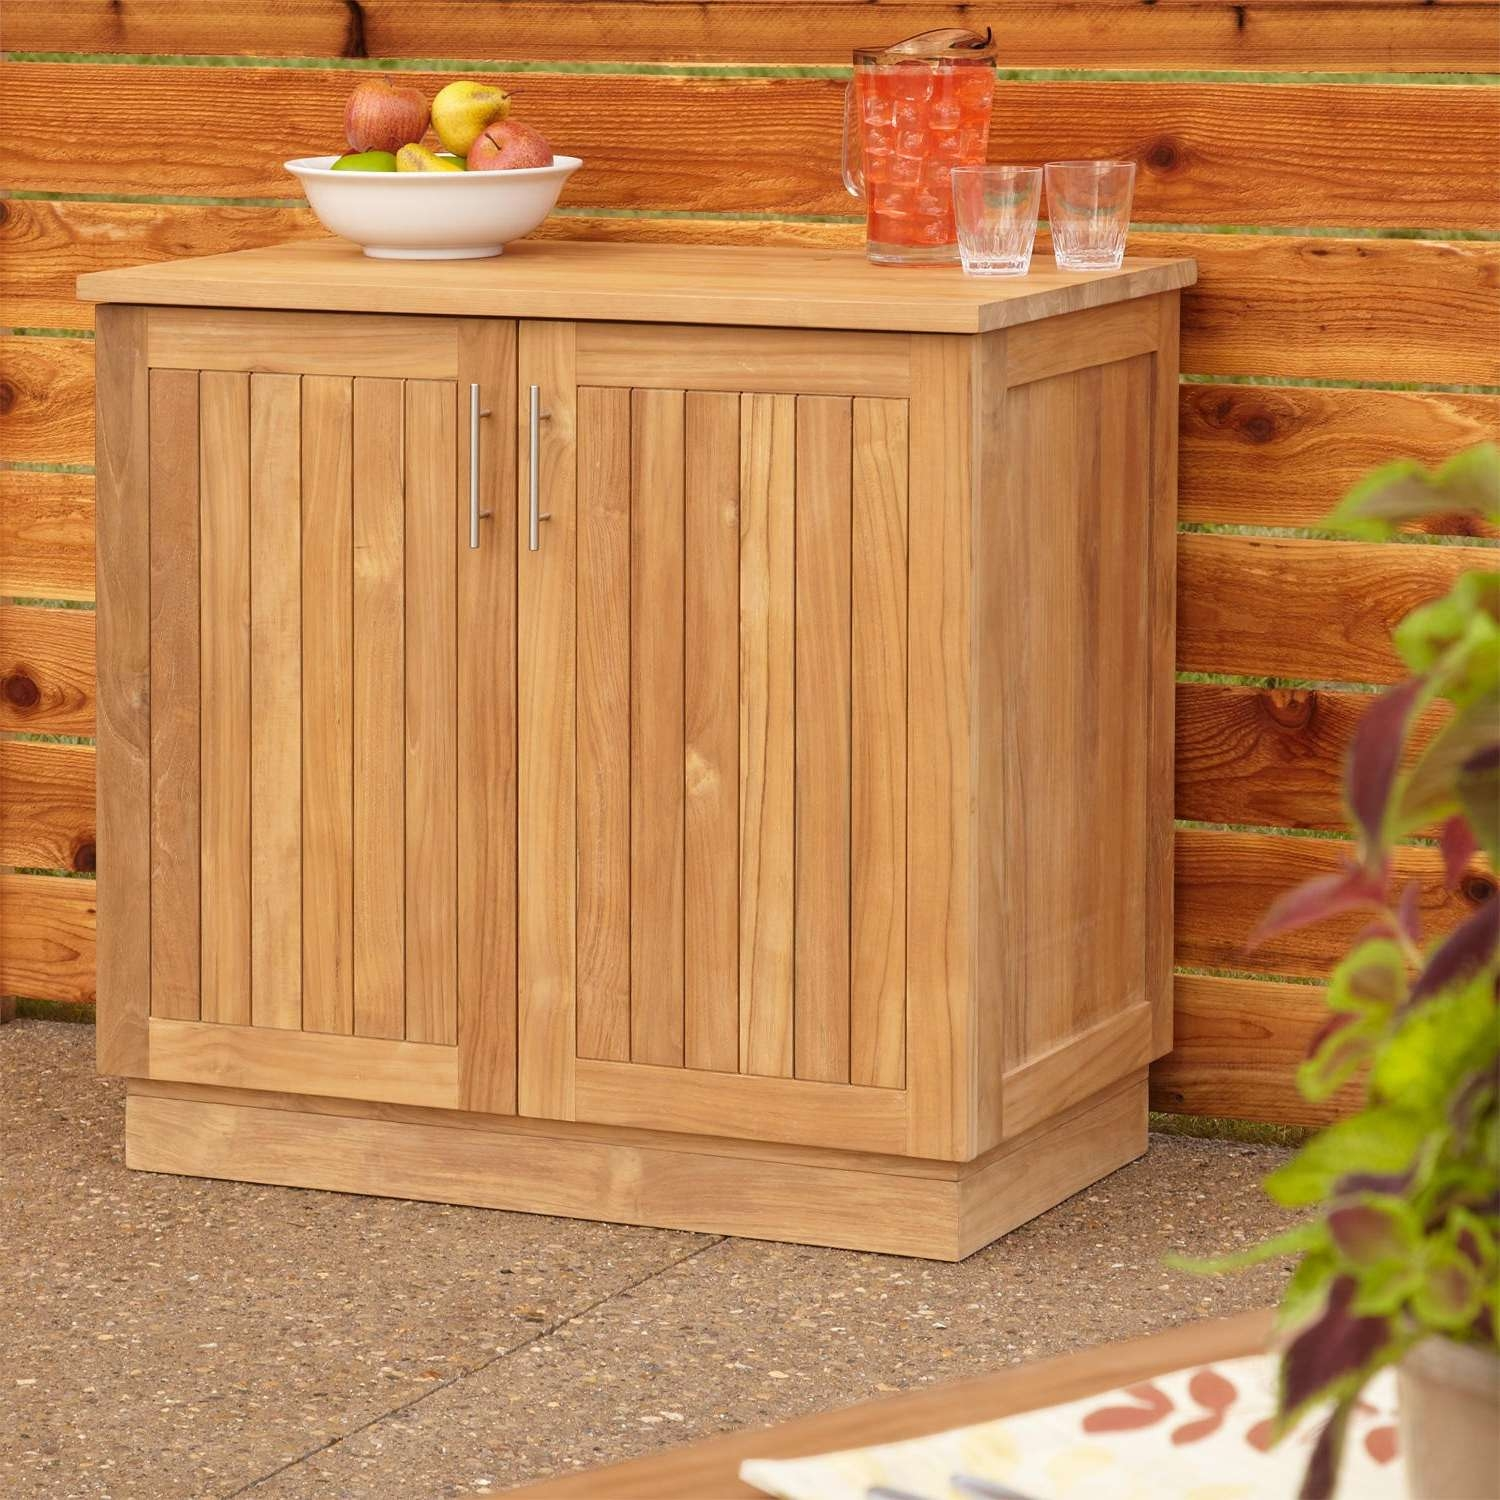 "36"" Artois Teak Outdoor Kitchen Cabinet – Outdoor Intended For Outdoor Sideboards Cabinets (View 1 of 20)"